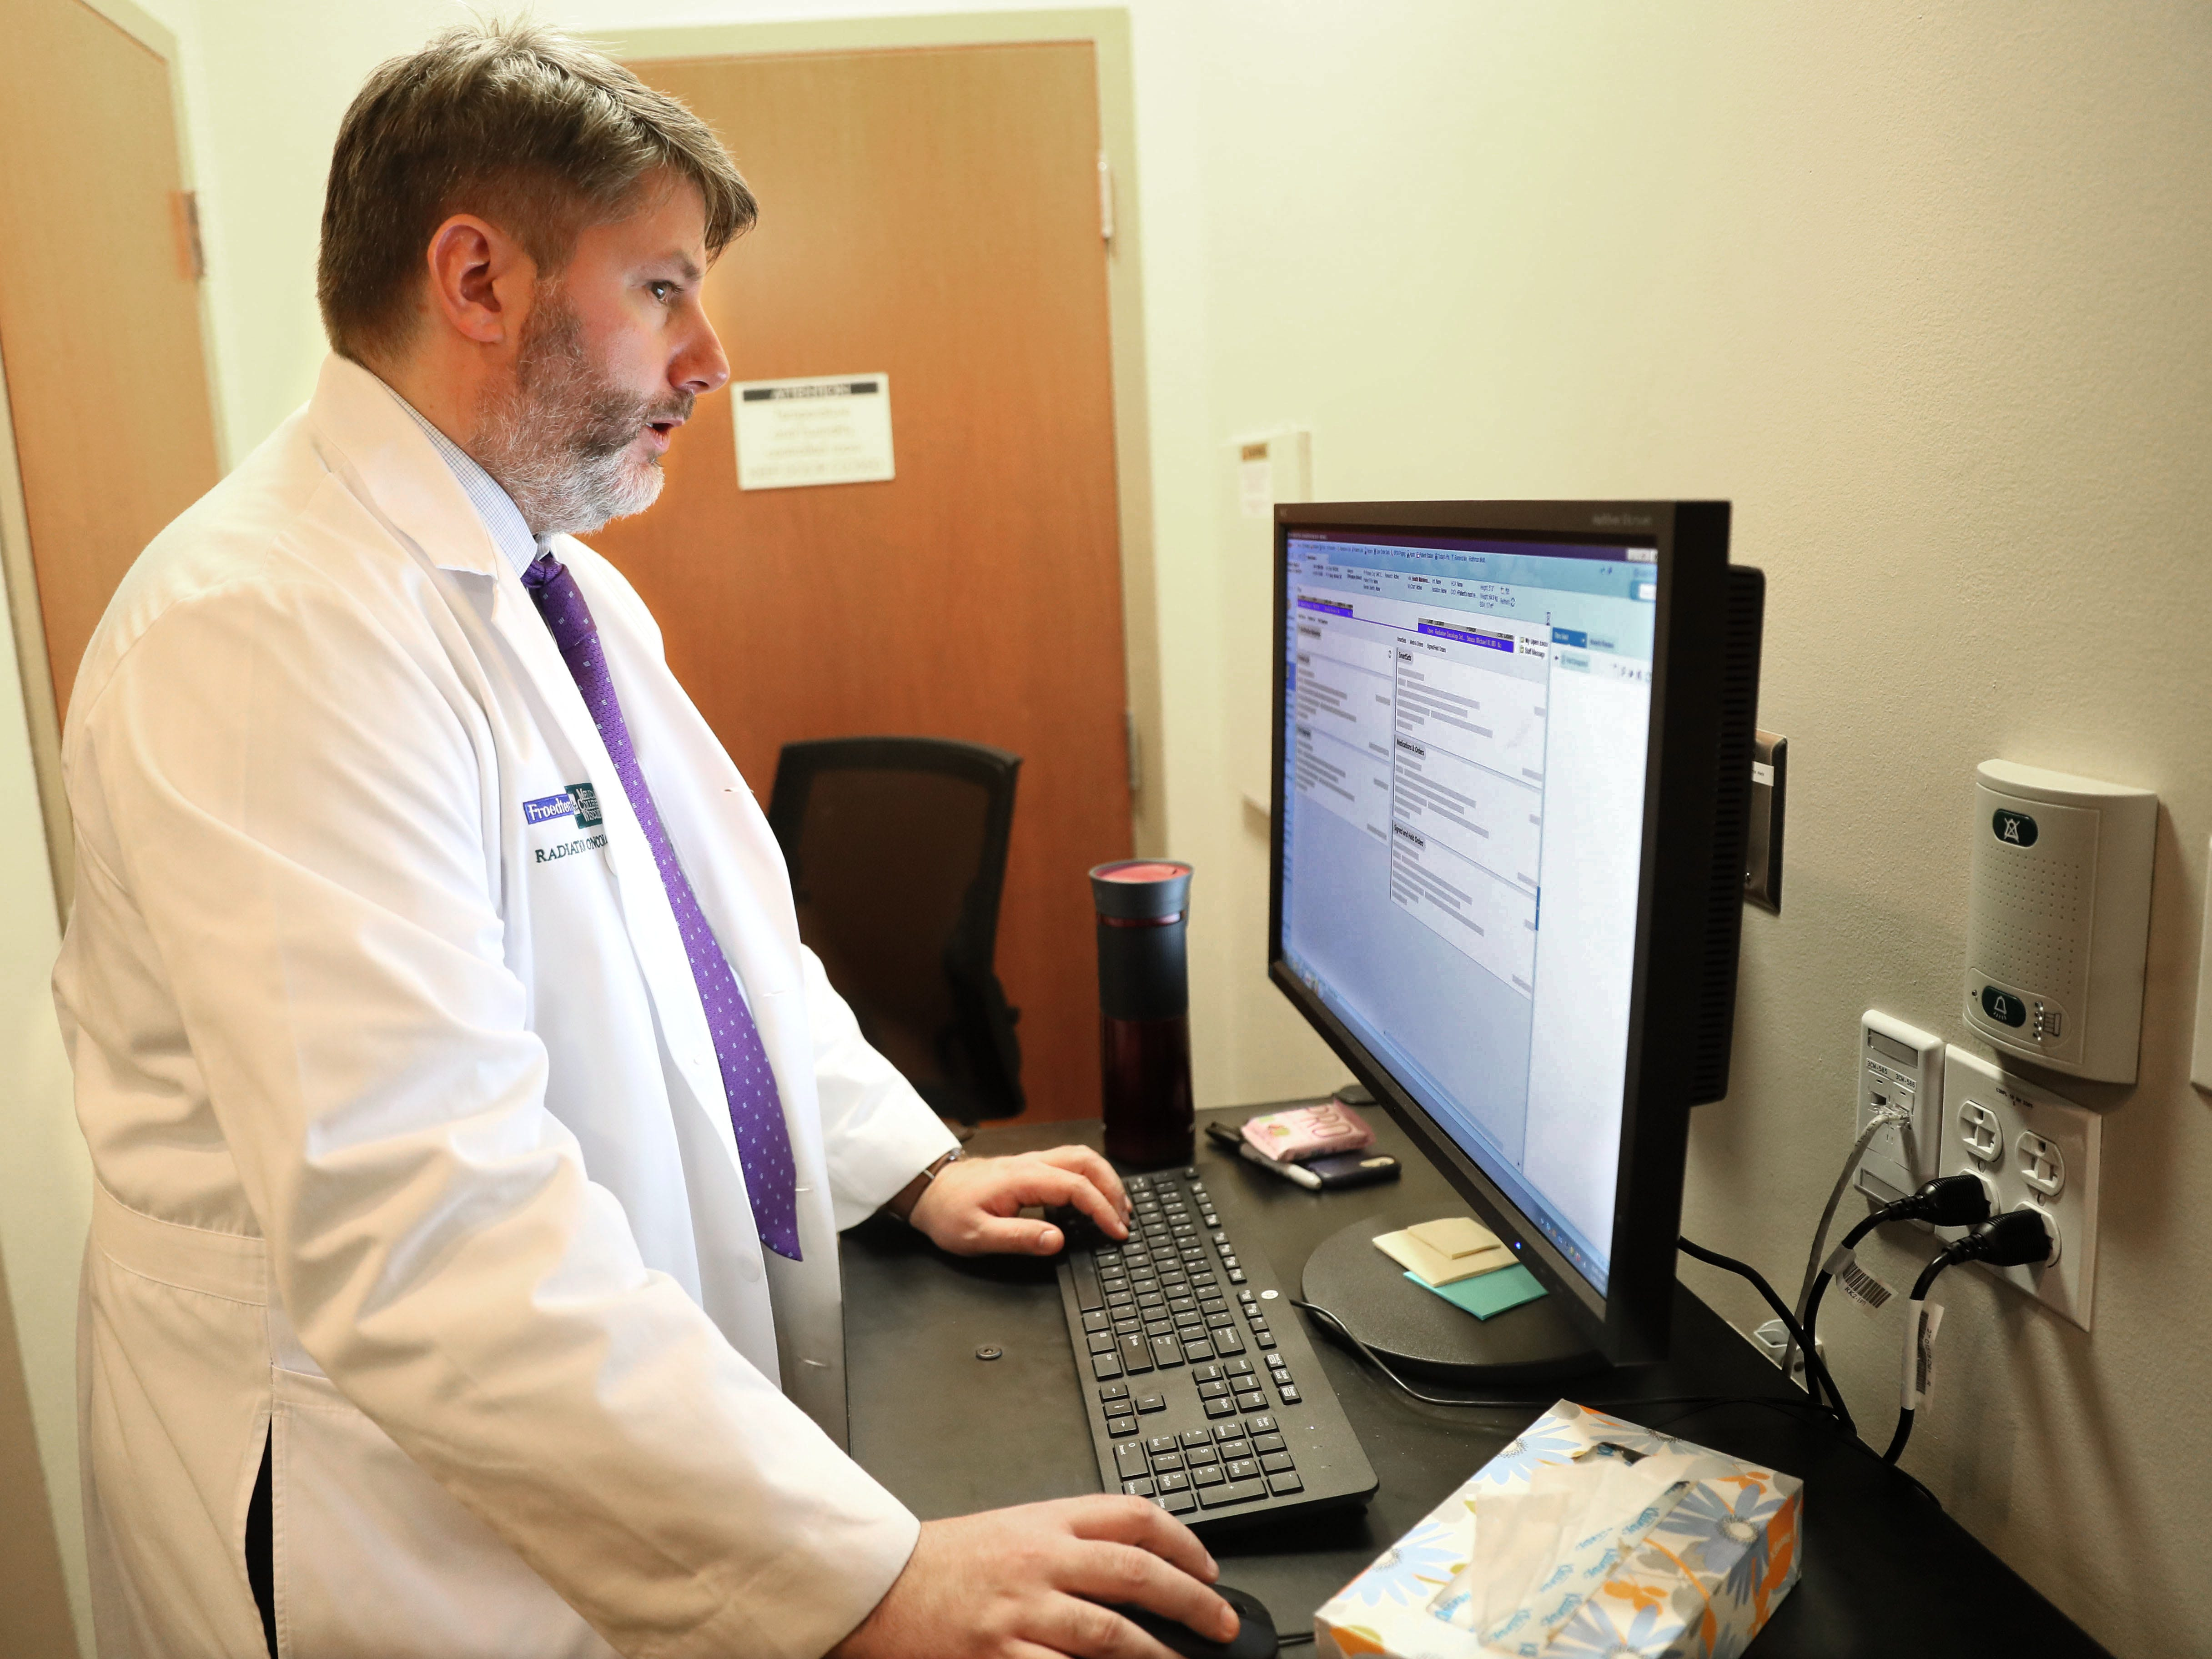 Michael Straza, Paula Wendt's oncologist, looks over patient data before the treatment.